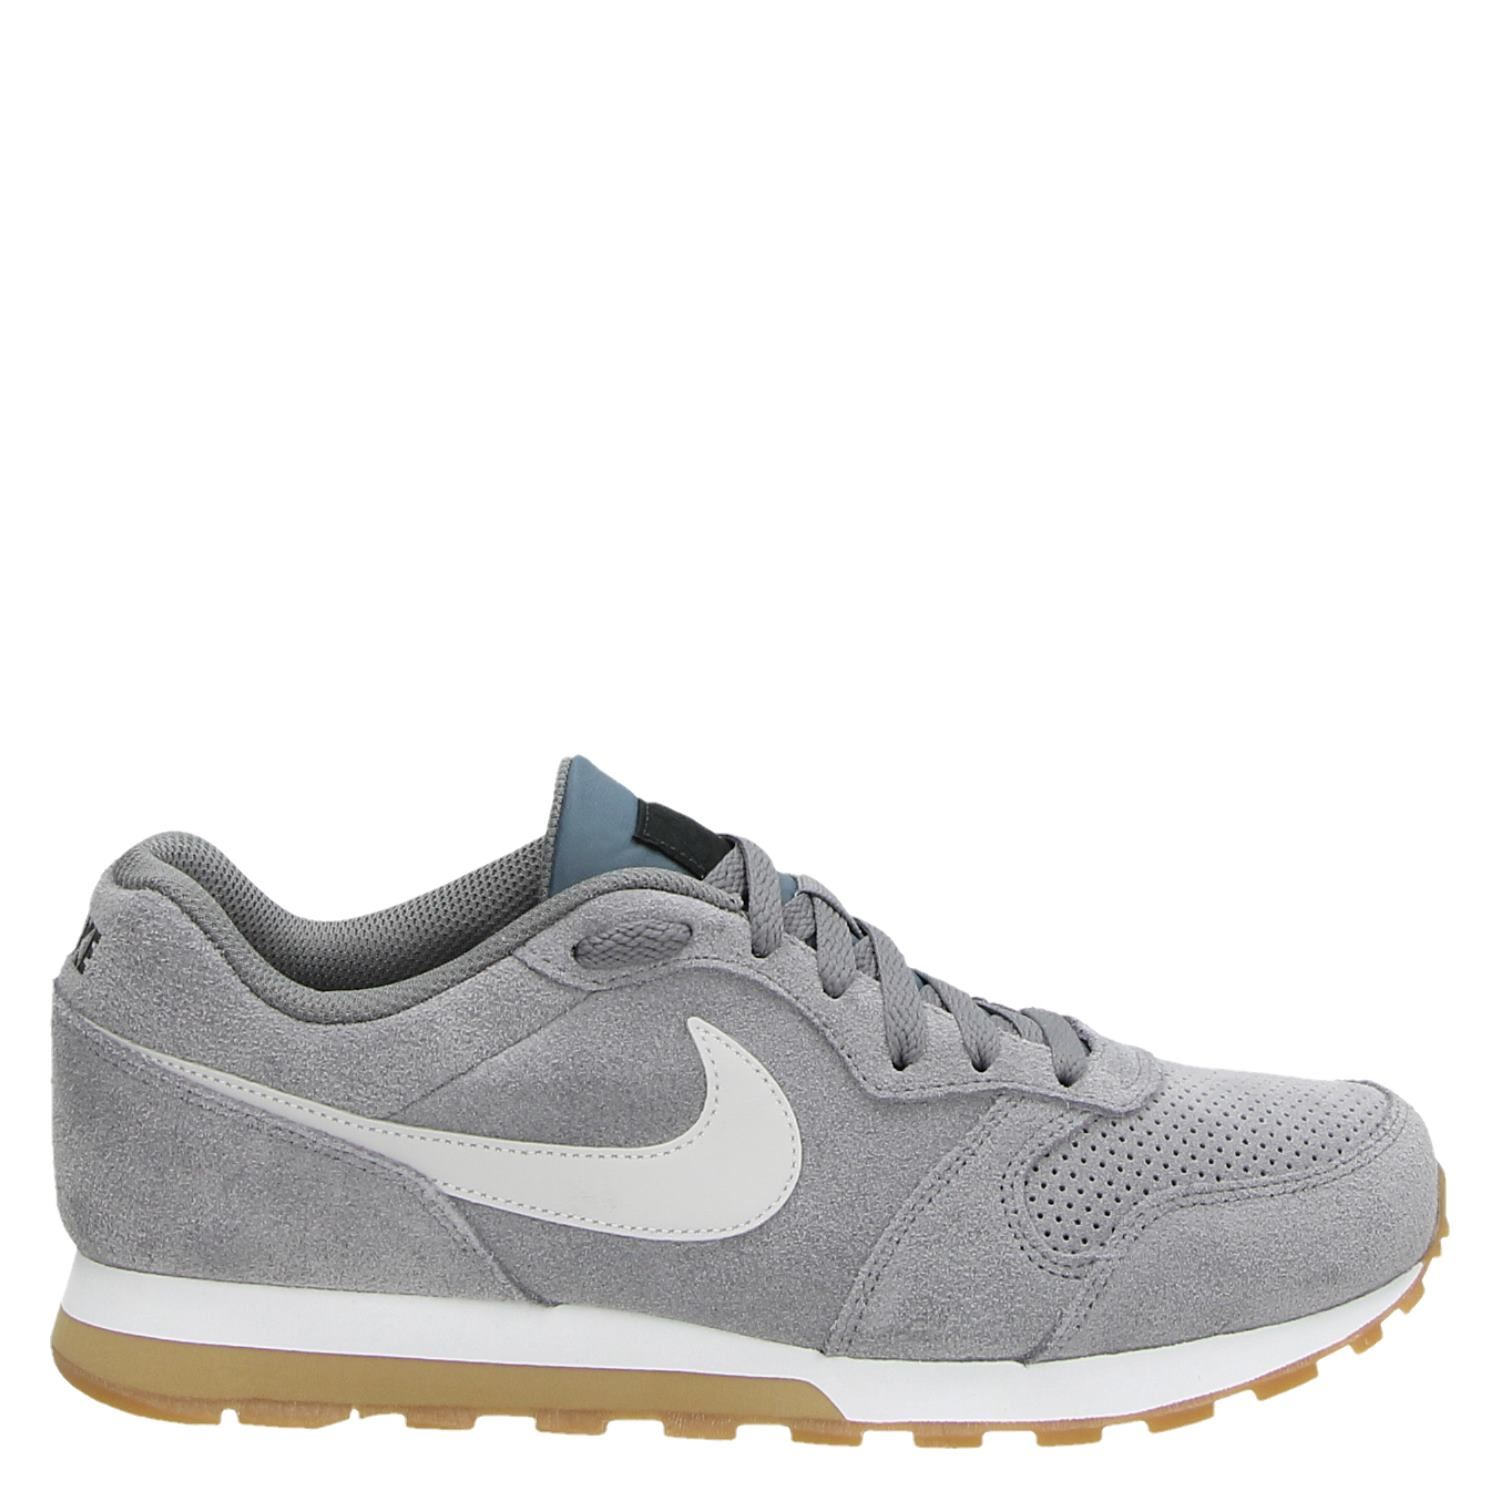 a5190ecf76a Nike MD Runner 2 heren lage sneakers. Previous